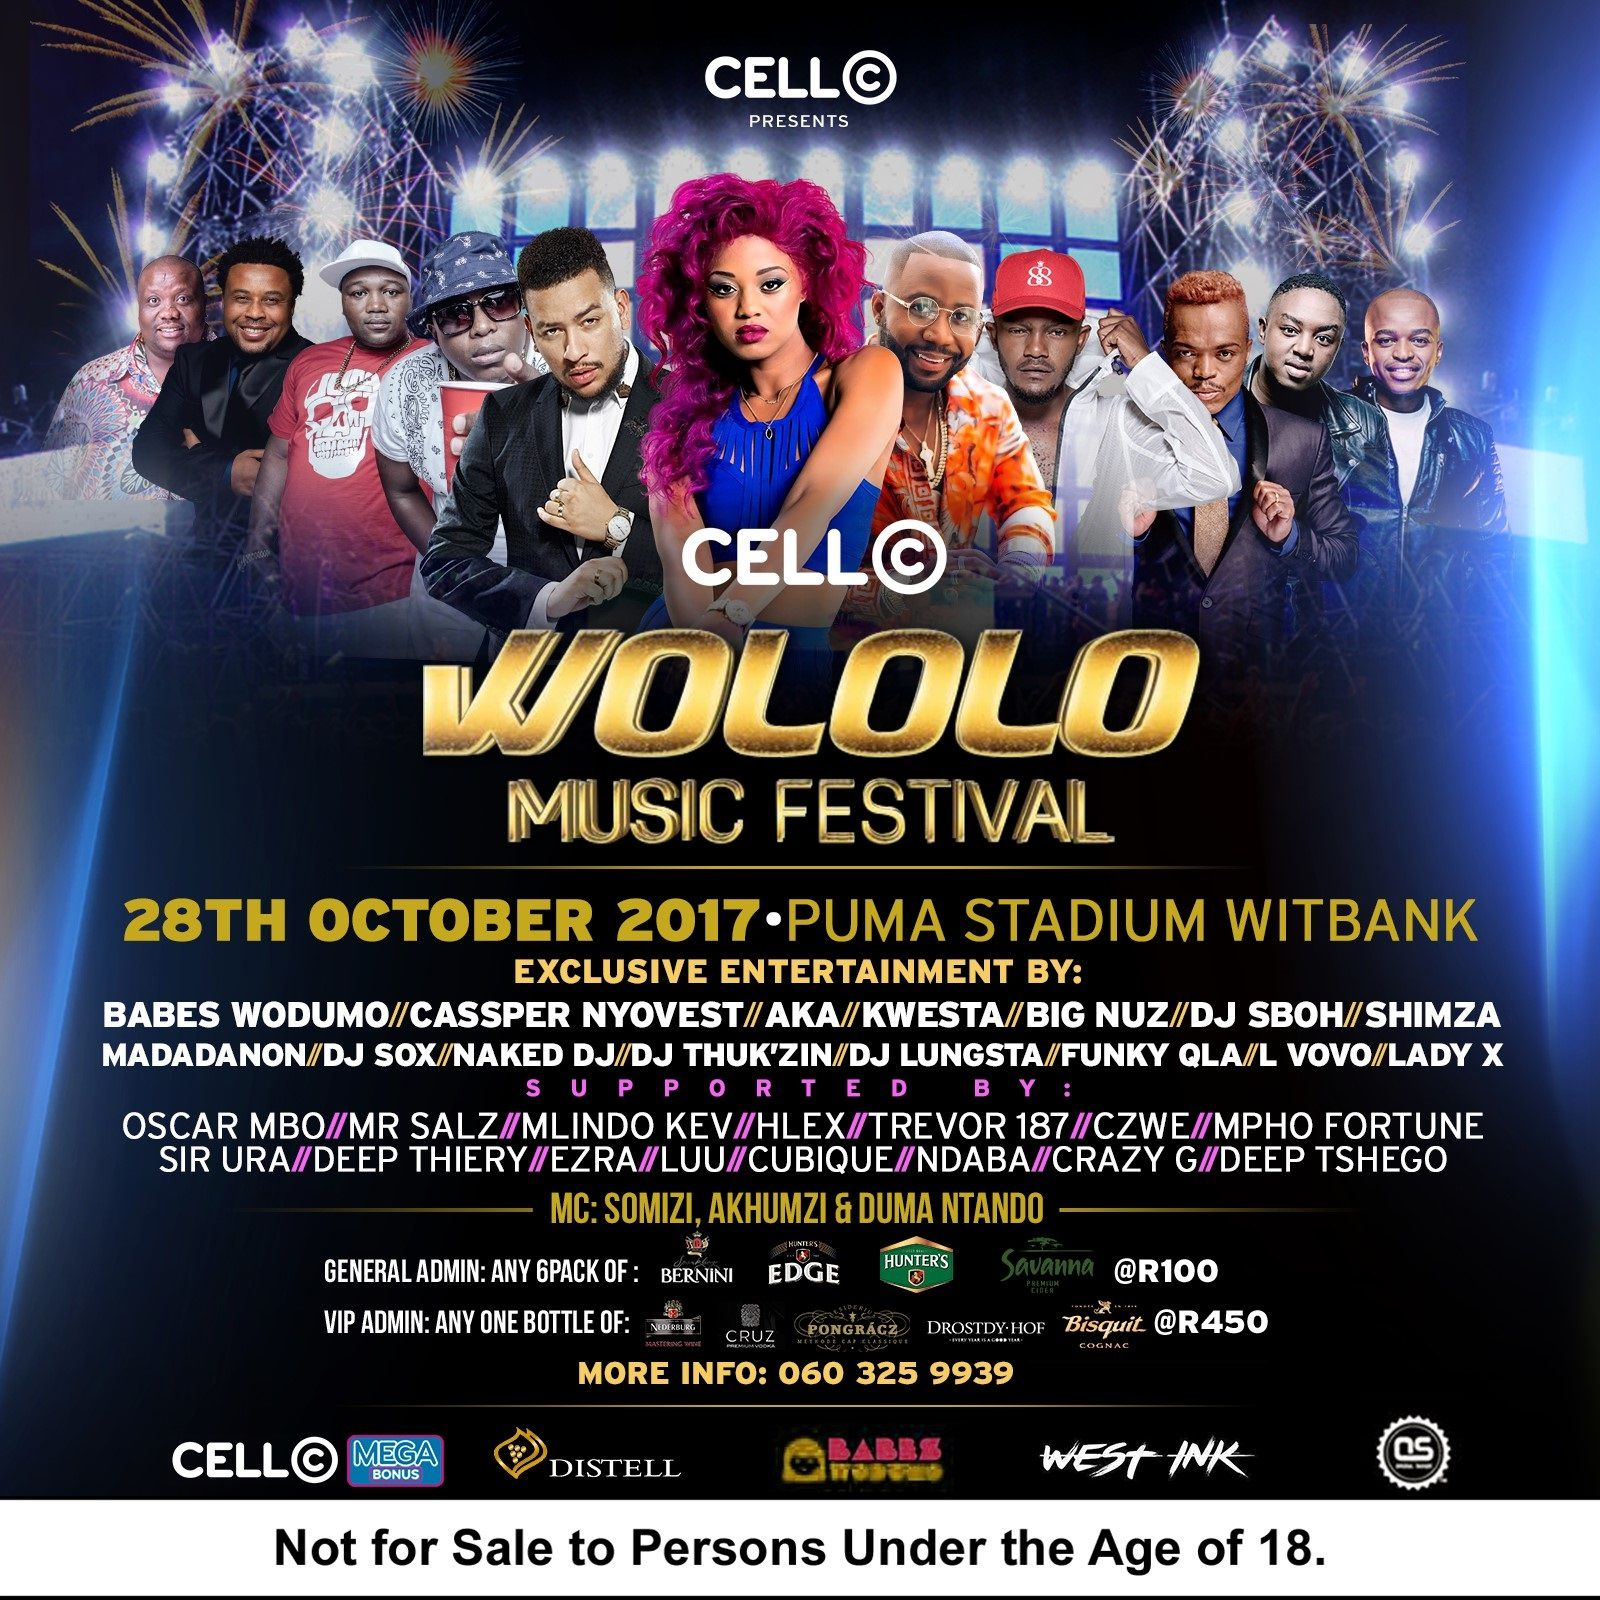 Aka And Cassper Nyovest To Headline At Wololo Music Festival photo